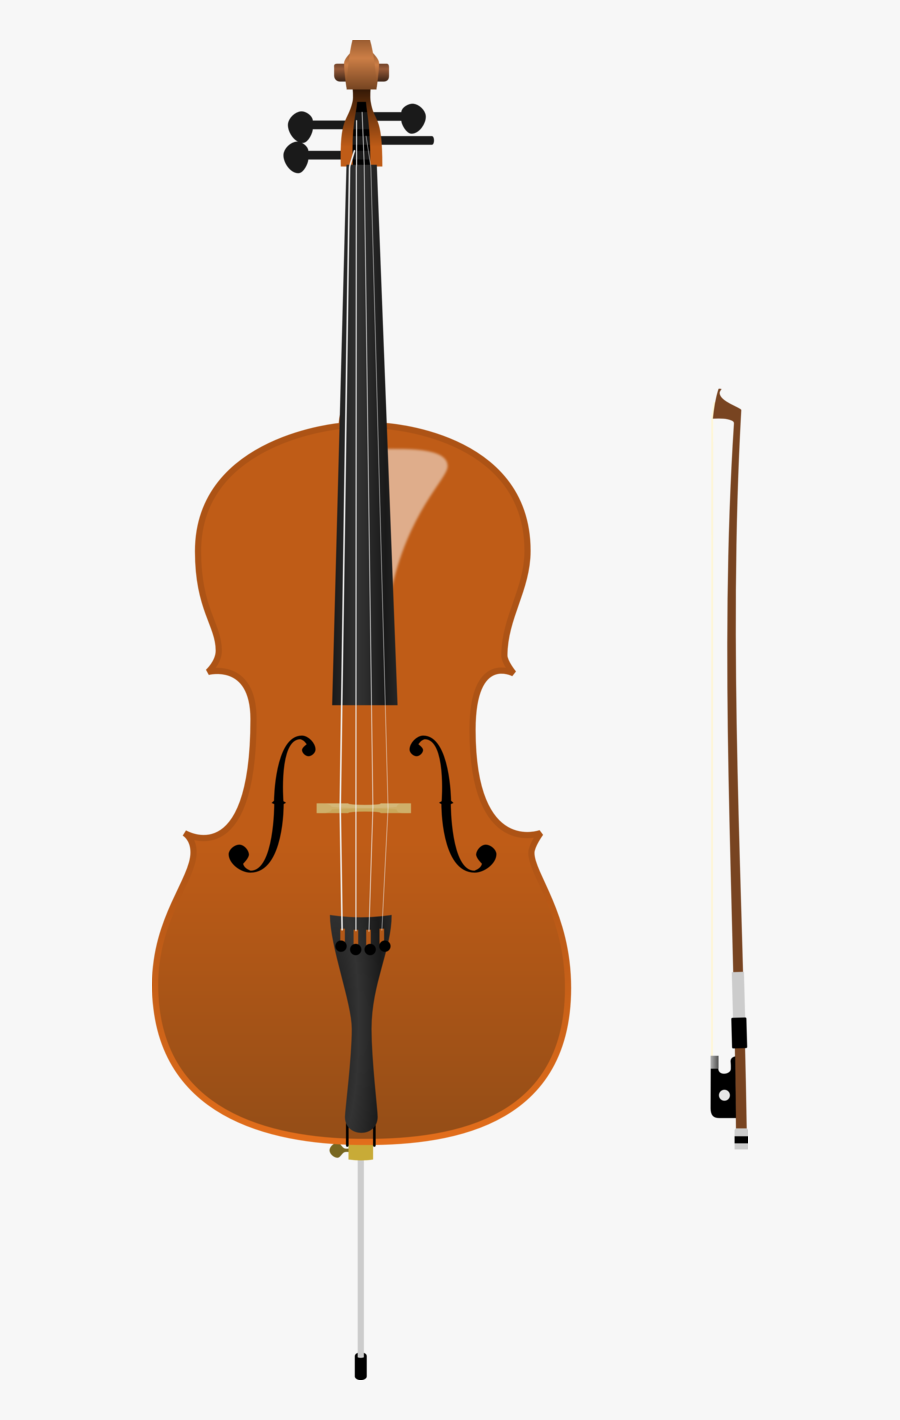 Cello Png Pic Cello Clipart Transparent Background Free